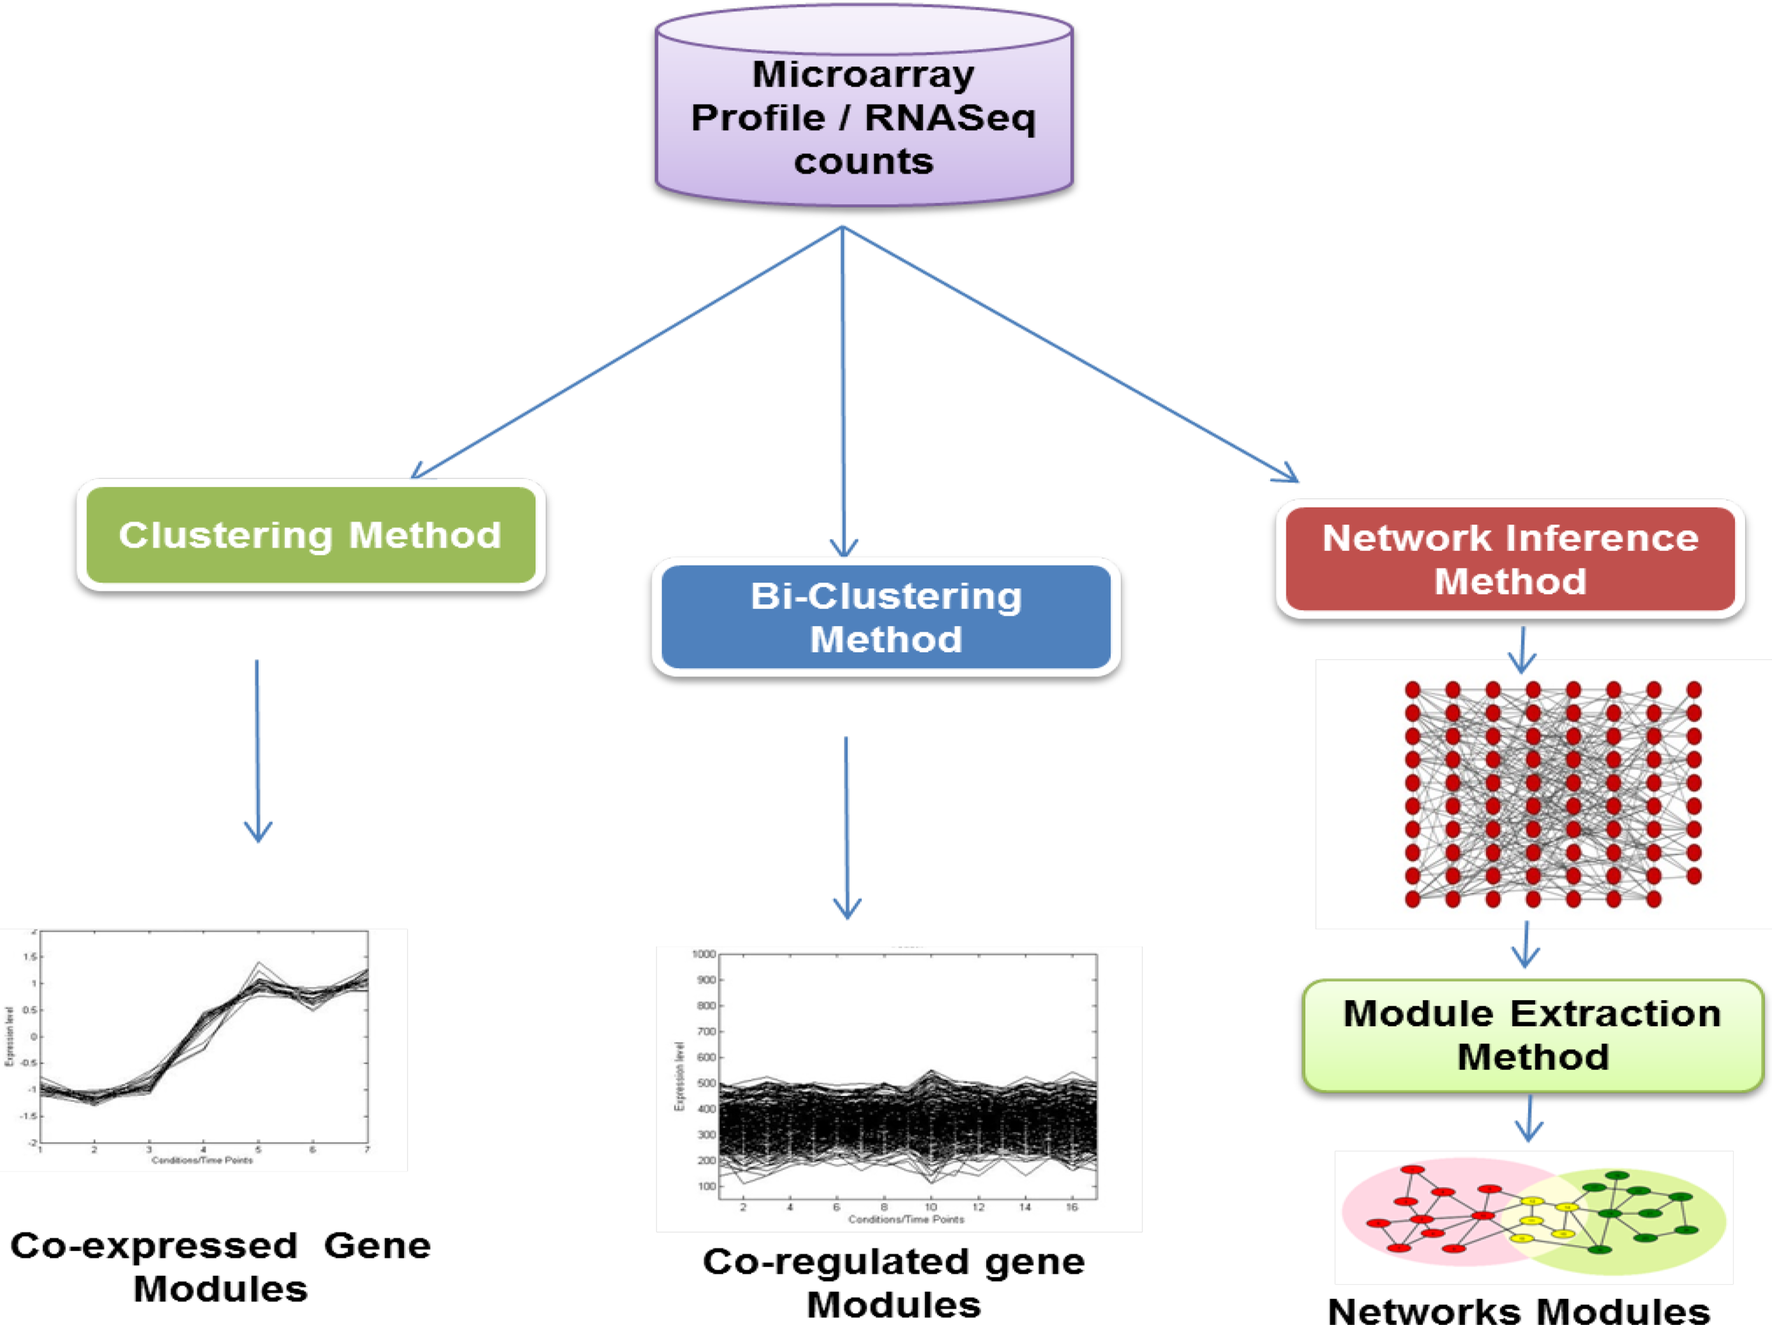 Qualitative assessment of functional module detectors on microarray